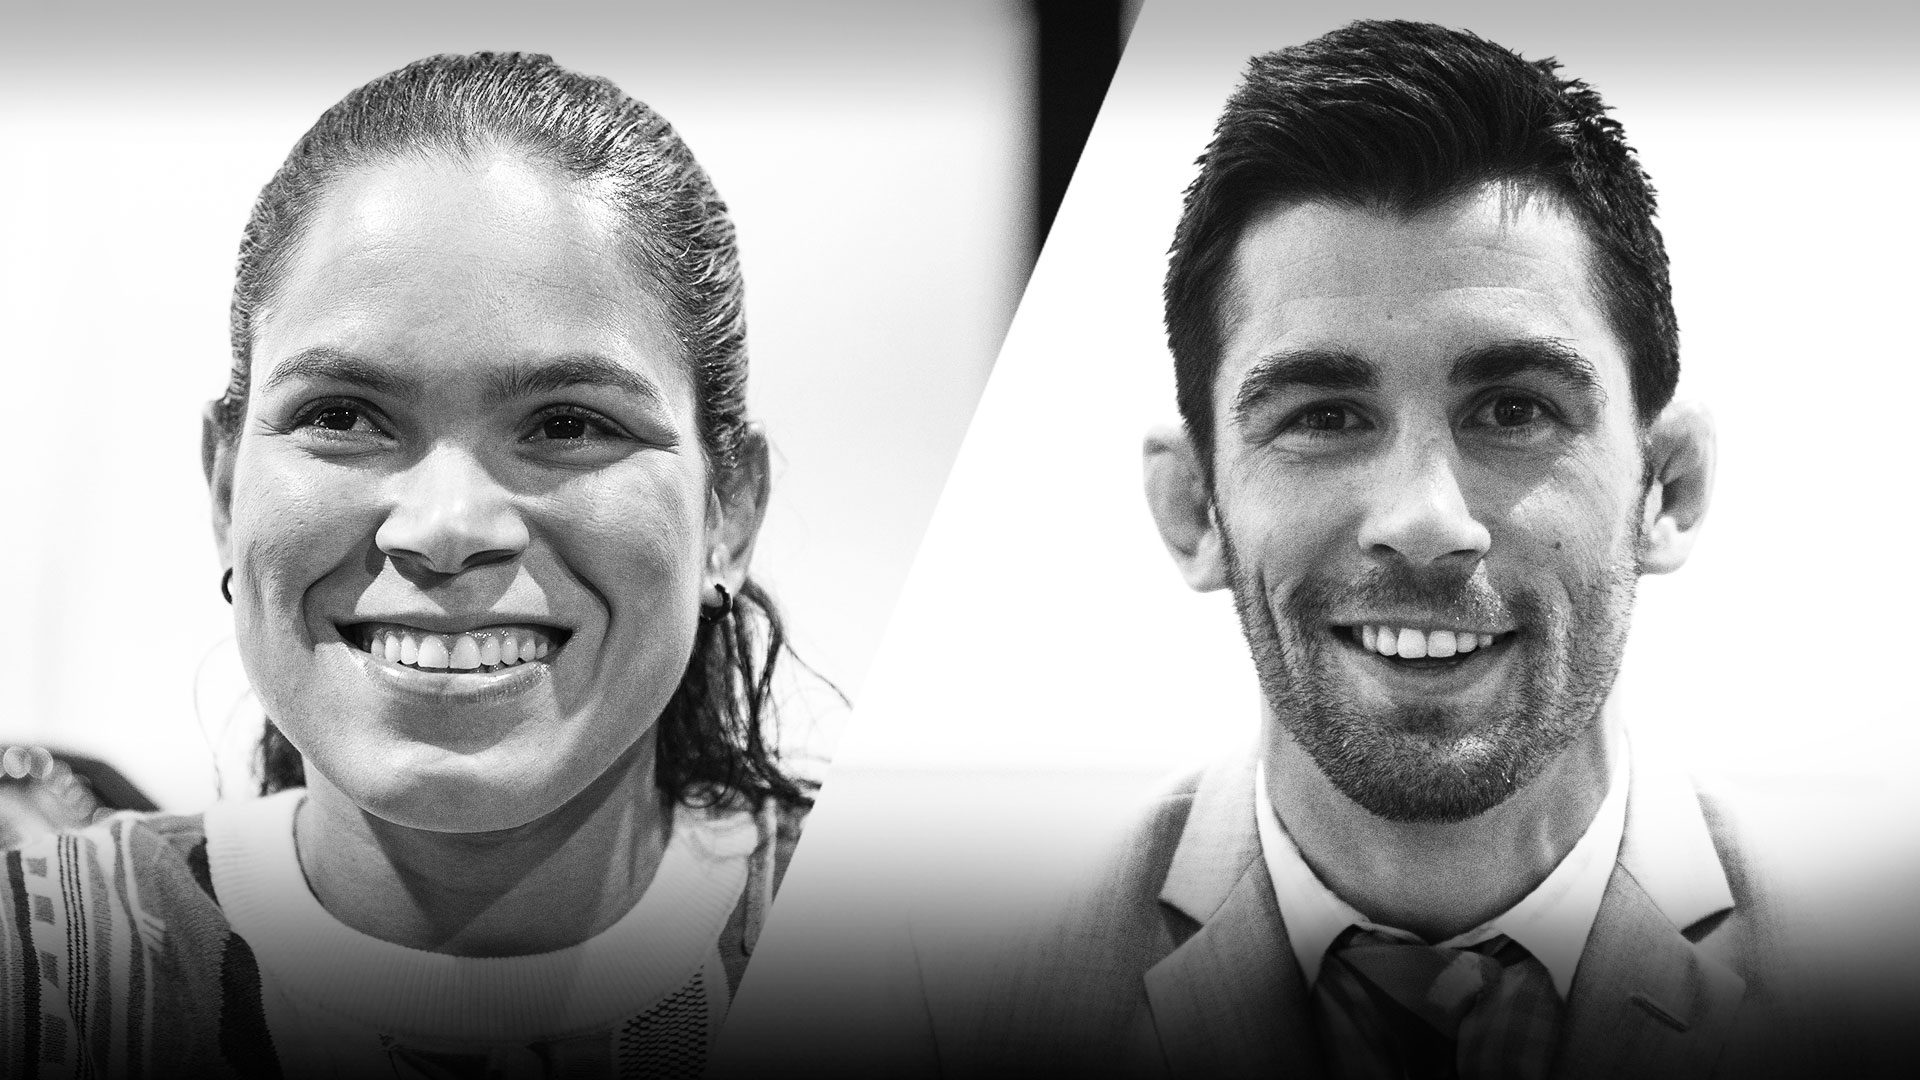 UFC Unfiltered Episode 475 Featuring Amanda Nunes and Dominick Cruz